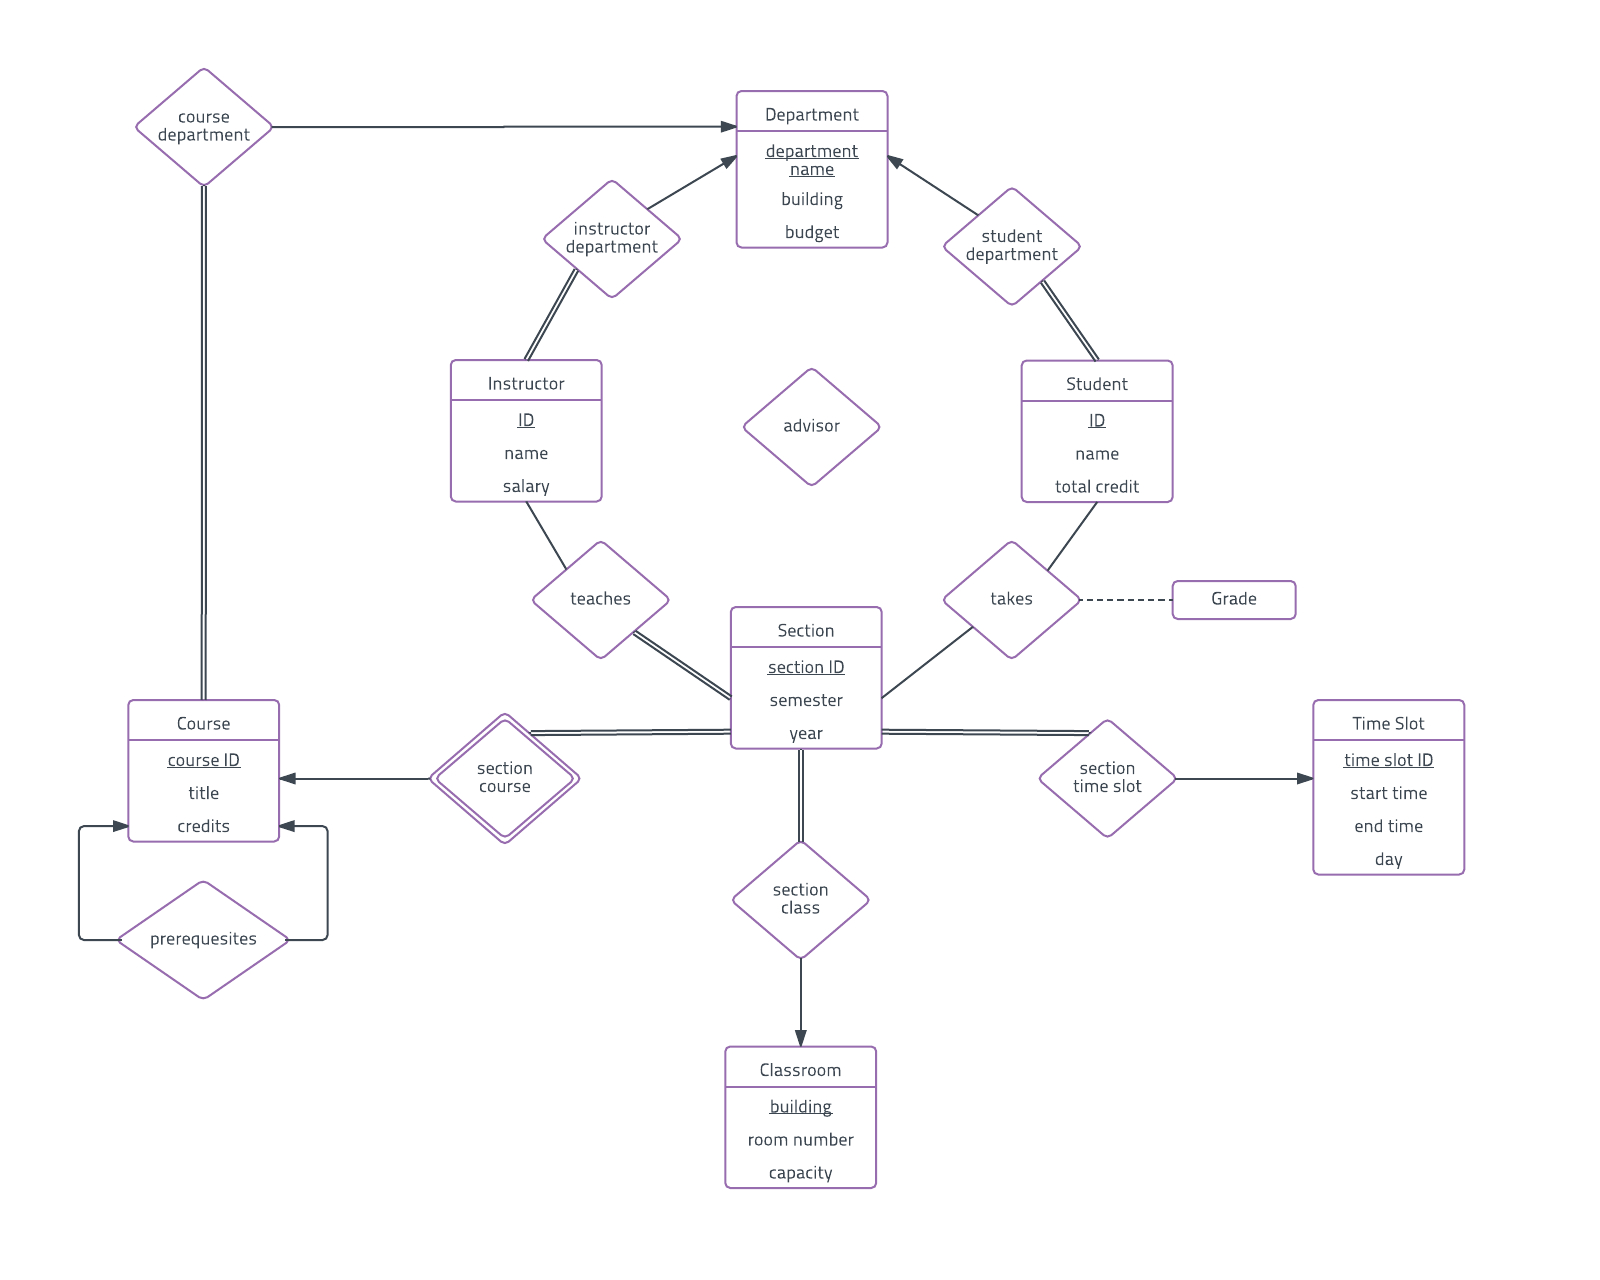 University Er Diagram Template | Lucidchart regarding Entity Relationship Diagram Example University